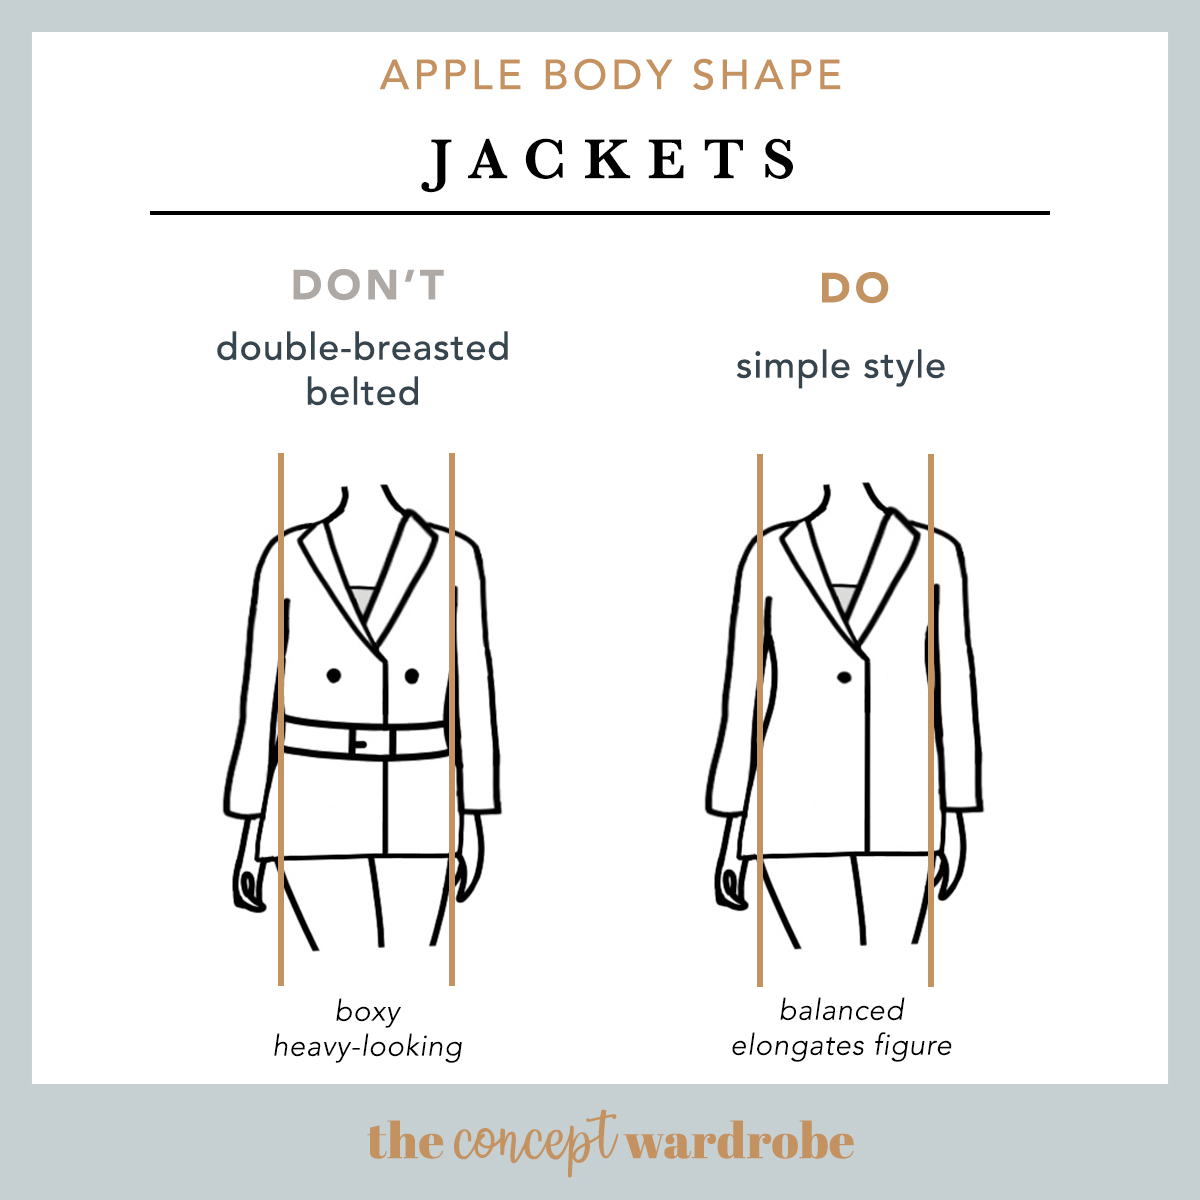 Apple Body Shape Jackets Do's and Don'ts - the concept wardrobe